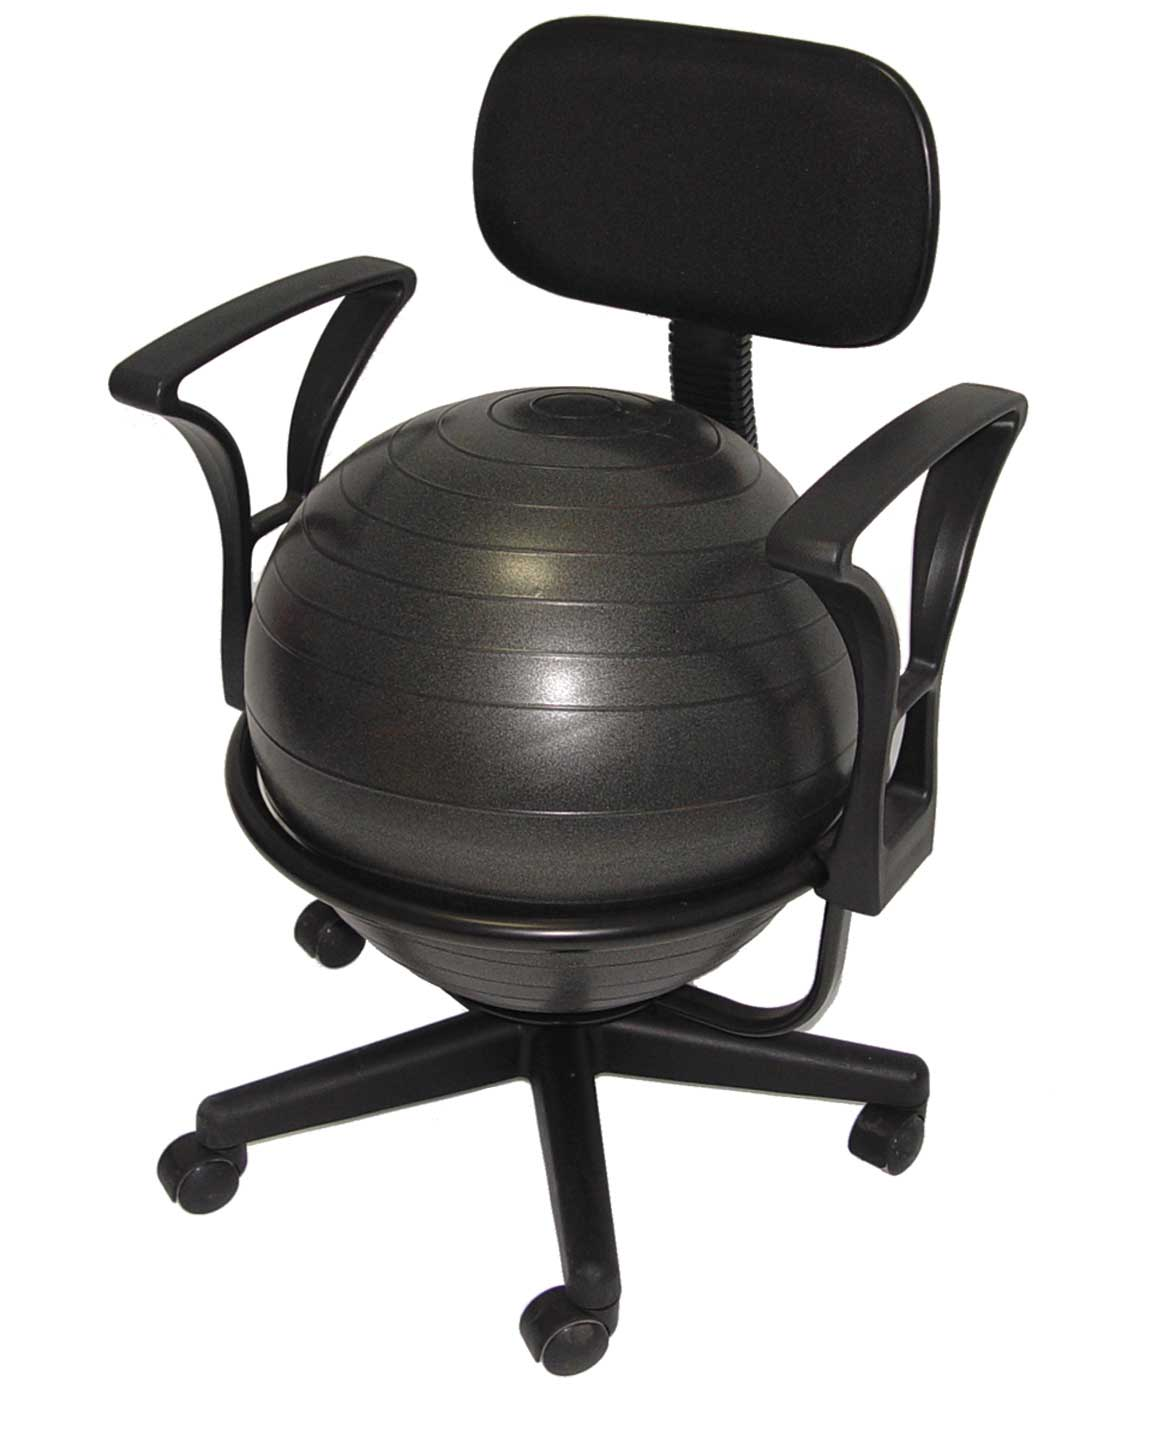 yoga ball chair exercises black covers australia ergonomic for office